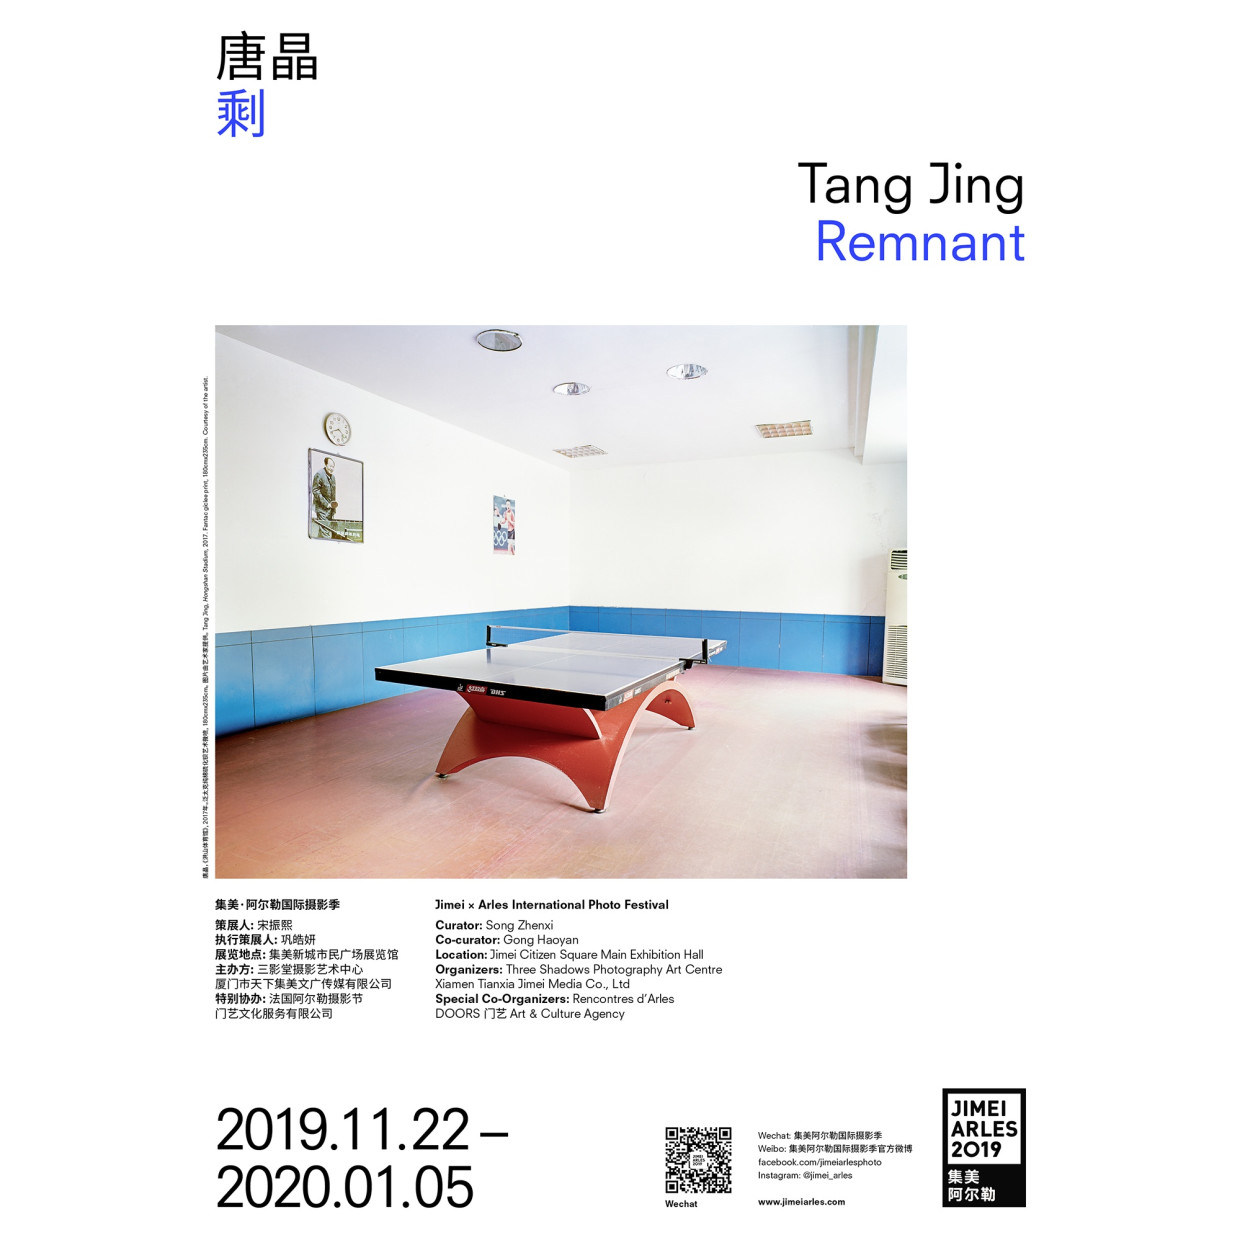 TANG JING REMNANT CURATED BY SONG ZHENXI CO-CURATED BY GONG HAOYAN There are parts of the world untouched by capital...